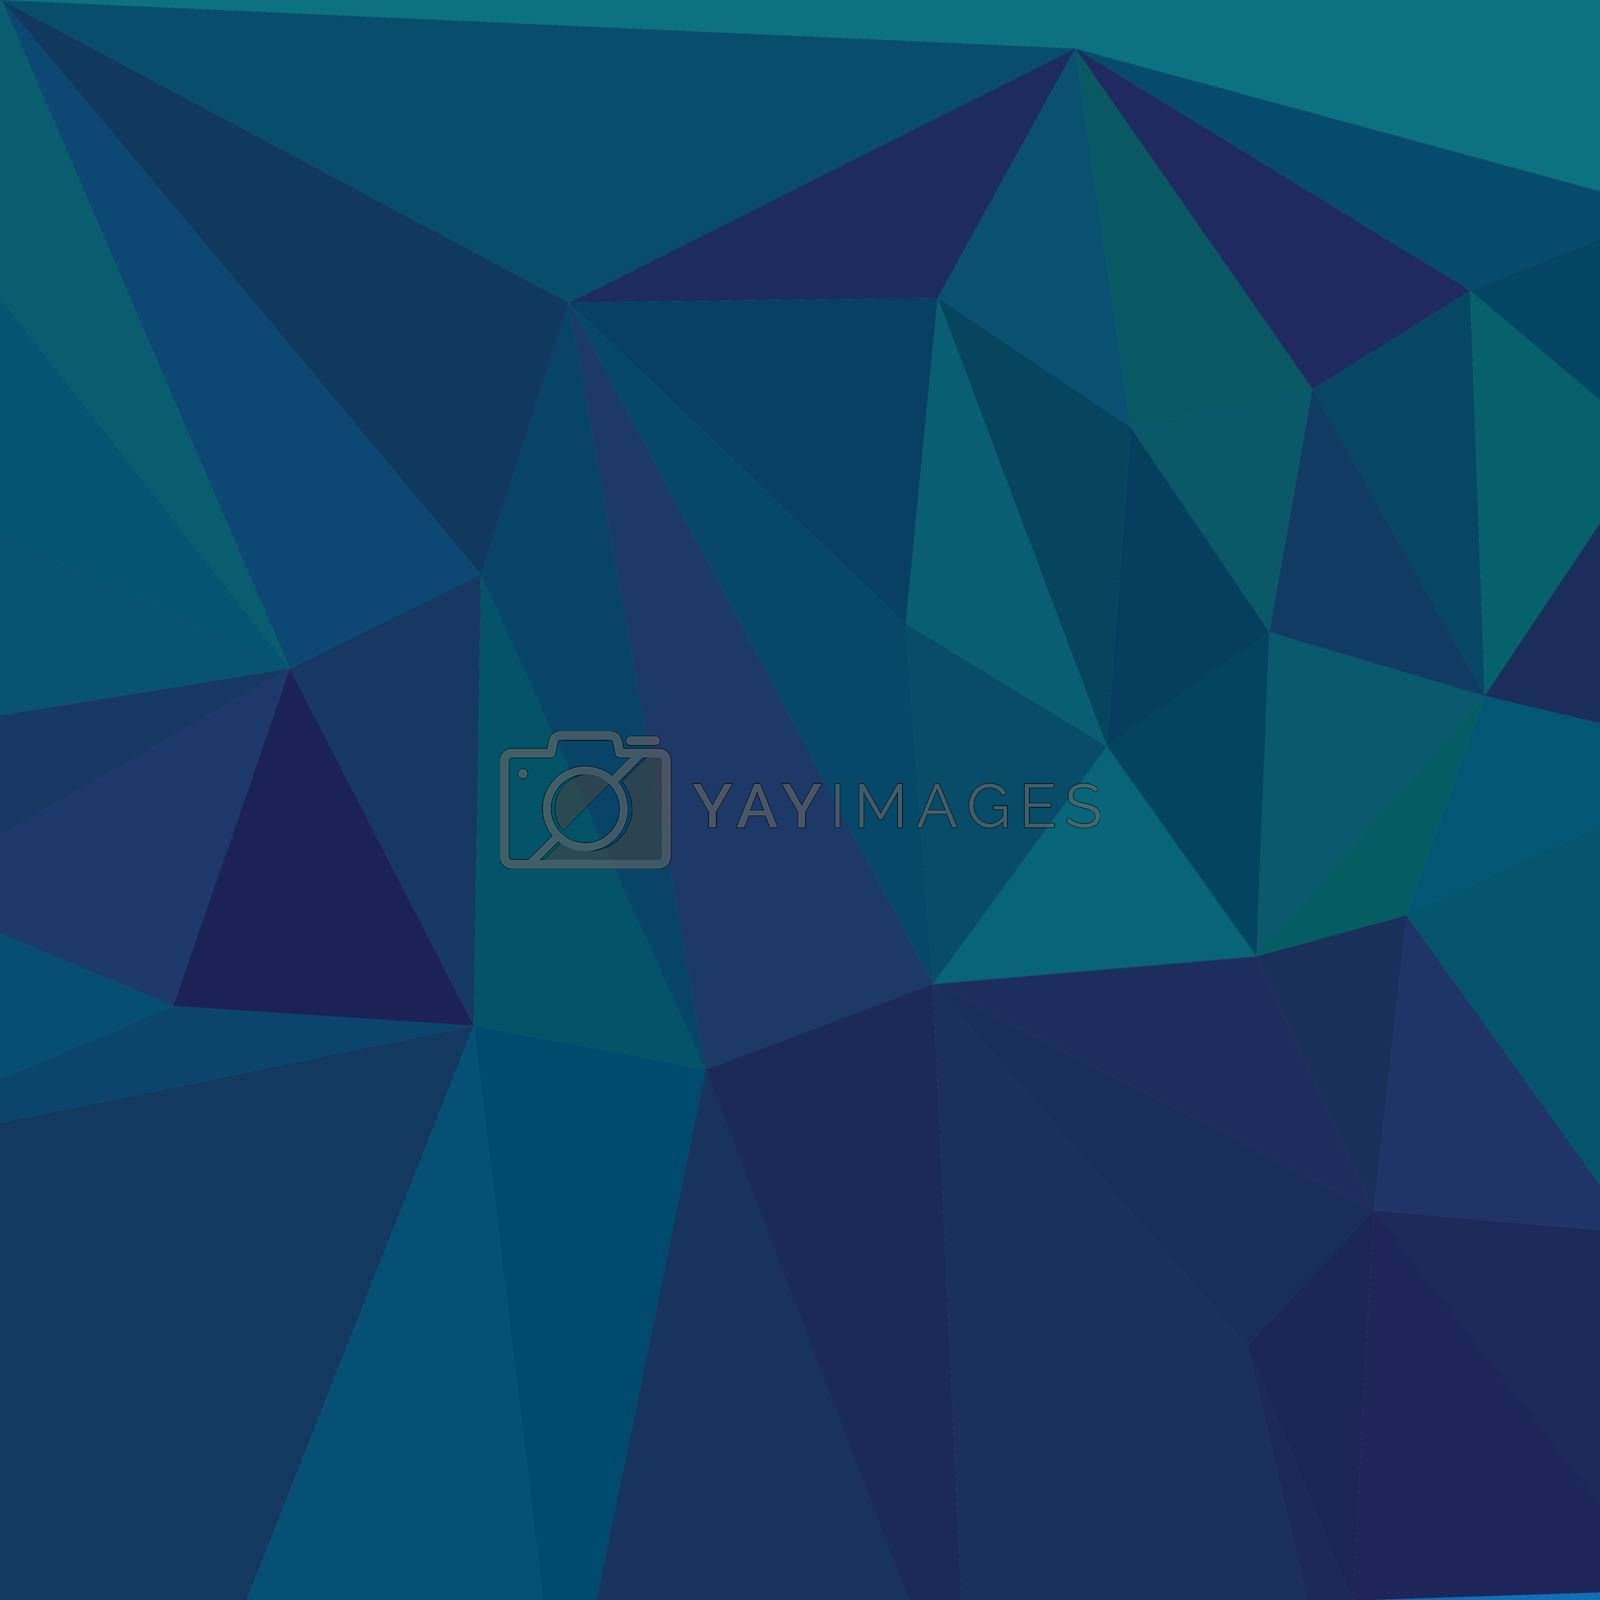 Low polygon style illustration of a medium teal blue abstract geometric background.